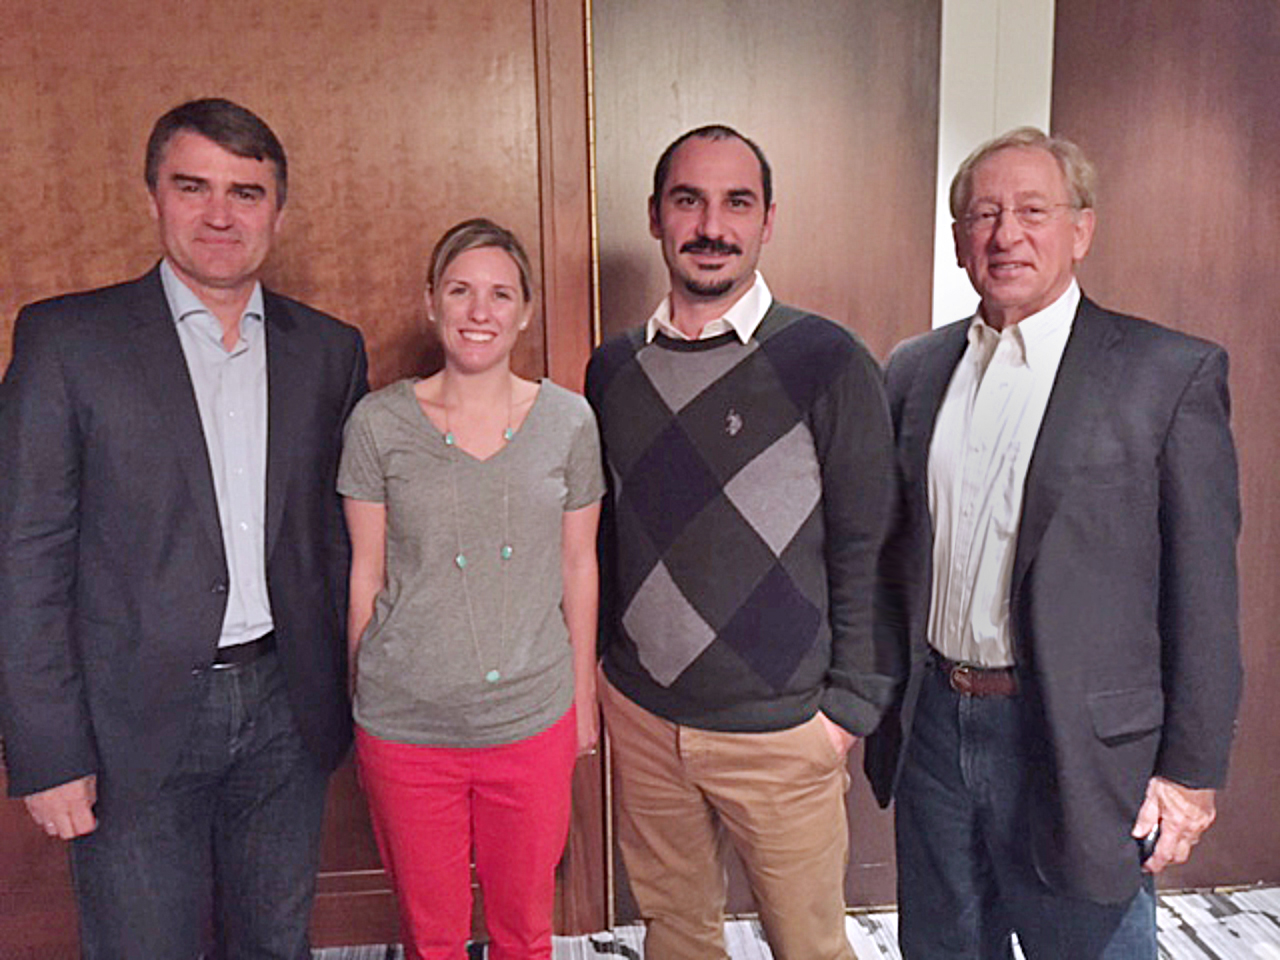 Pictured above (left to right) is past PRGN president Uwe Schmidt, Lauren Reed, APR, President at Reed Public Relations; Cinar Ergin, CEO at Aristo Communications and current PRGN president Ed Stevens, APR+M.